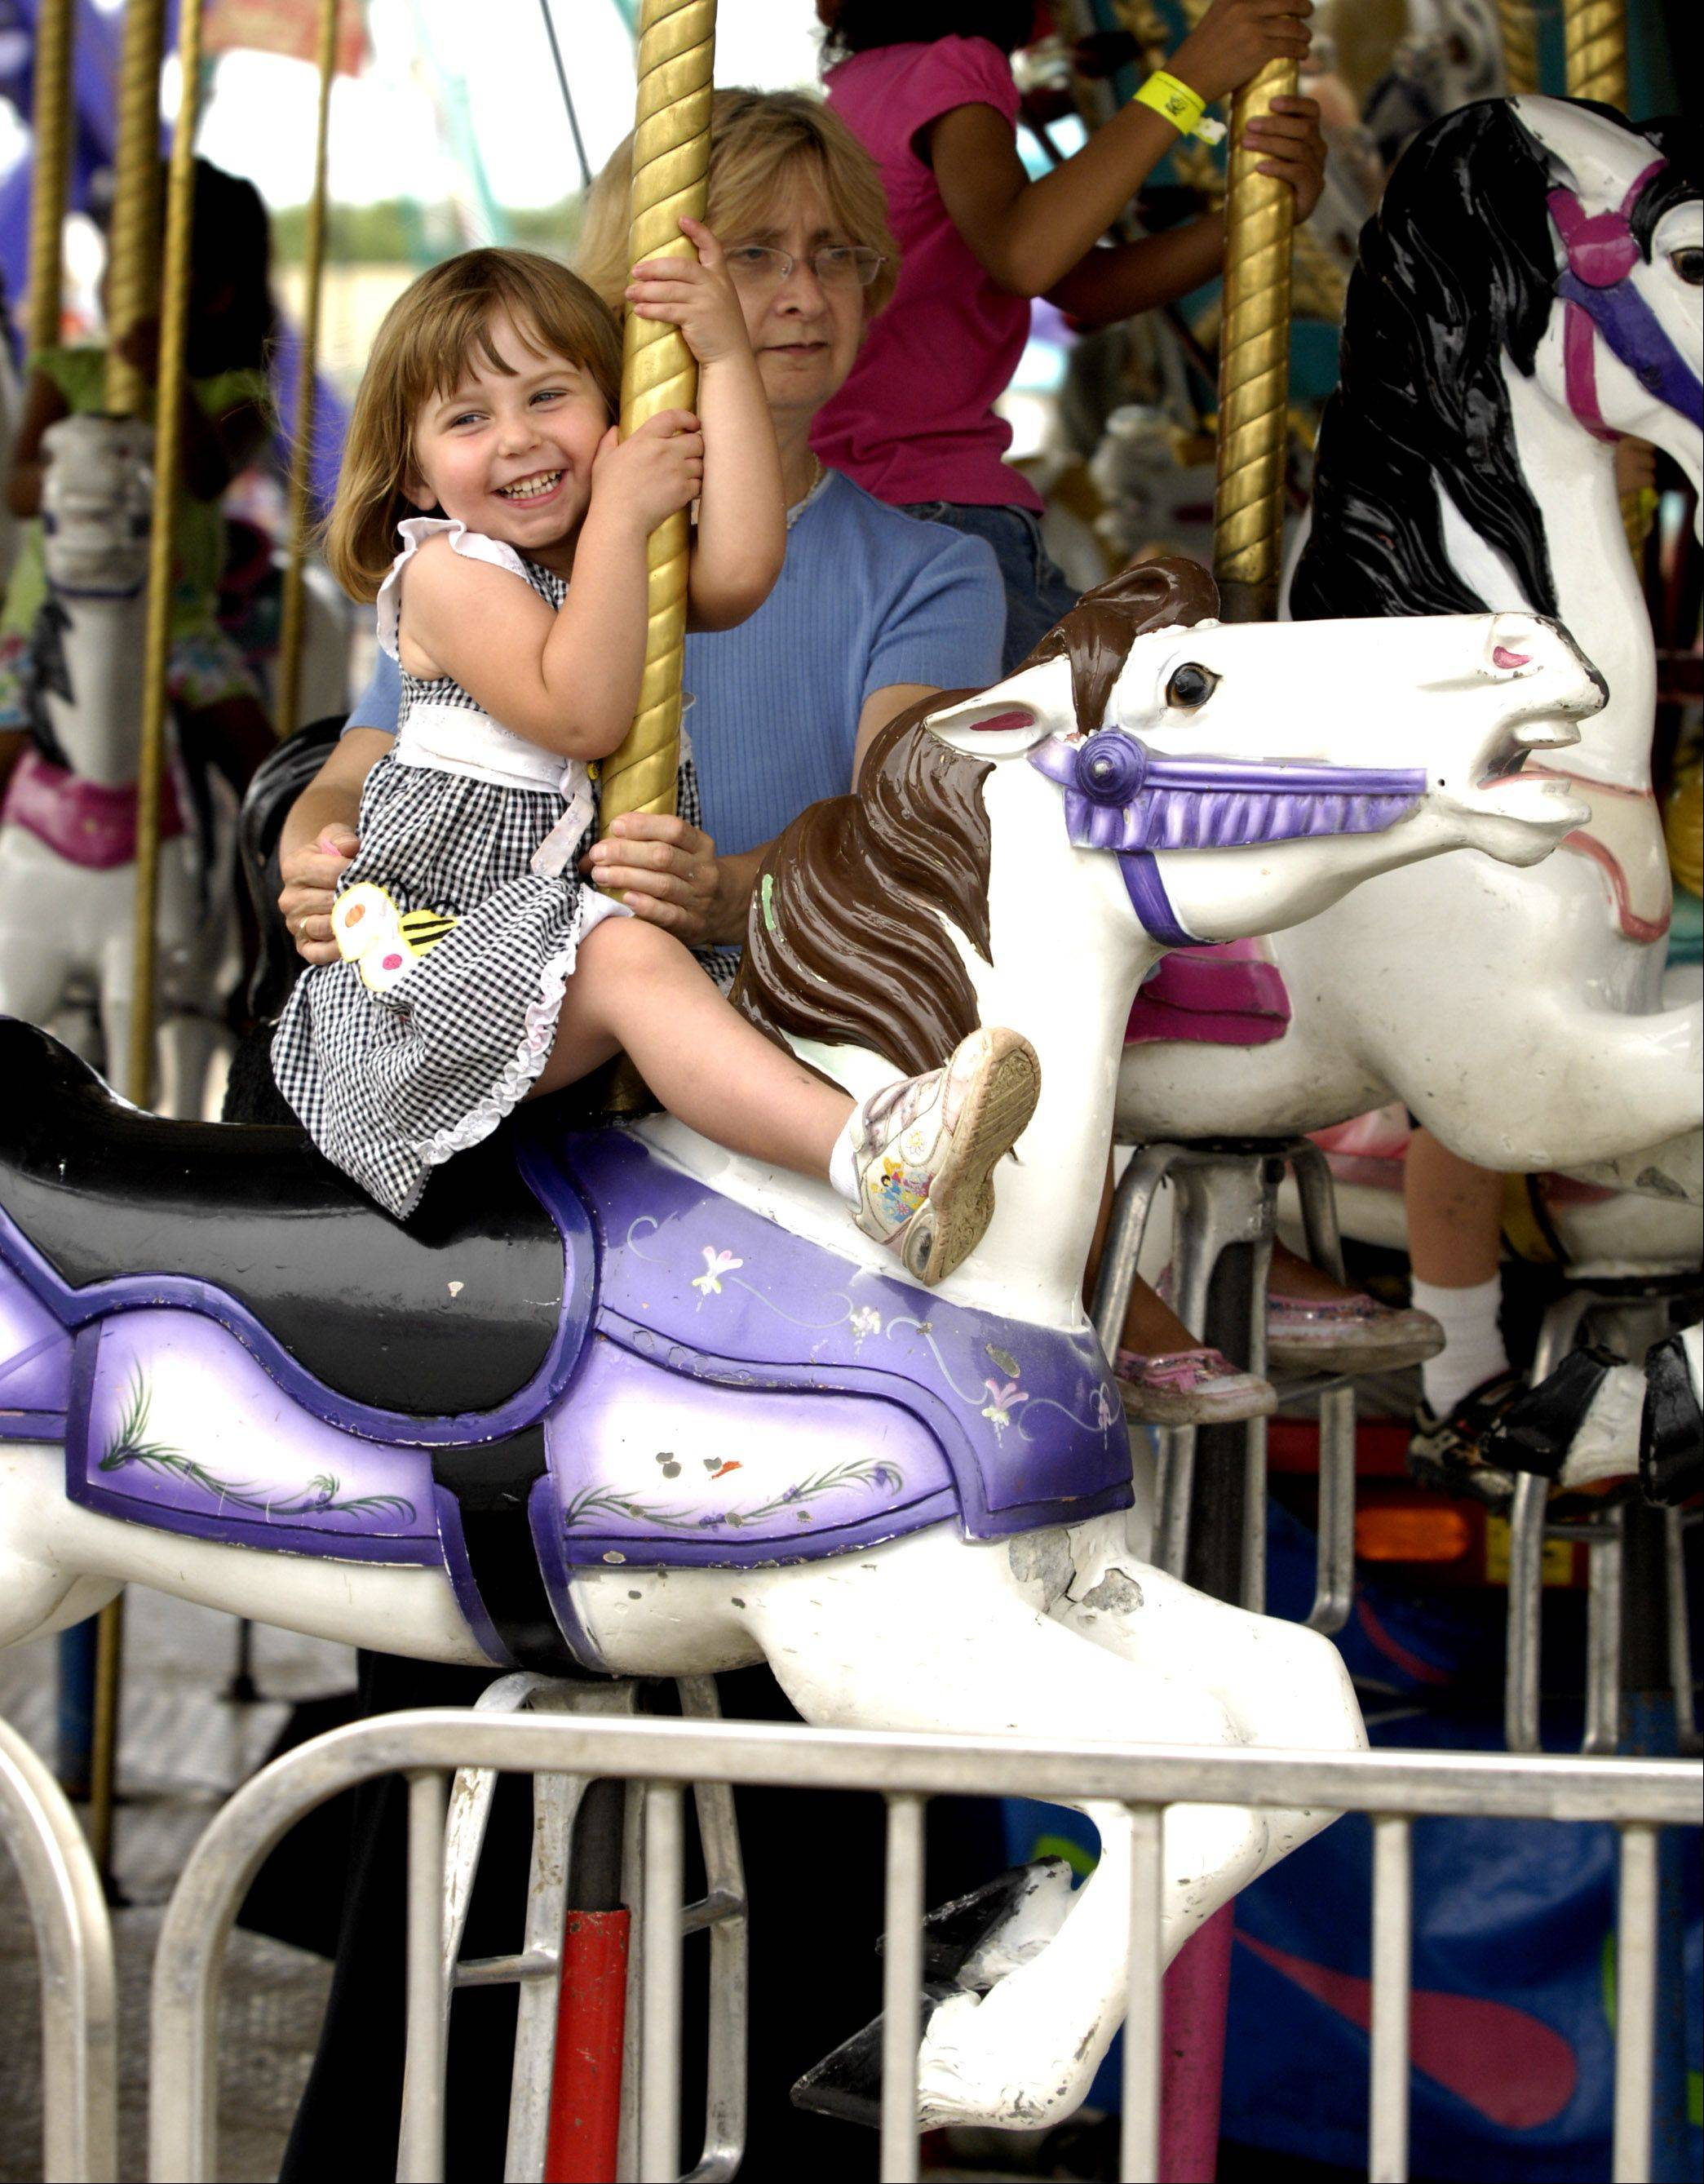 Lacey Brandstatt, 3, is all smiles as she rides the carousel with her grandmother, Laurie Brandstatt of Arlington Heights, on the final day of the 2011 Kane County Fair.